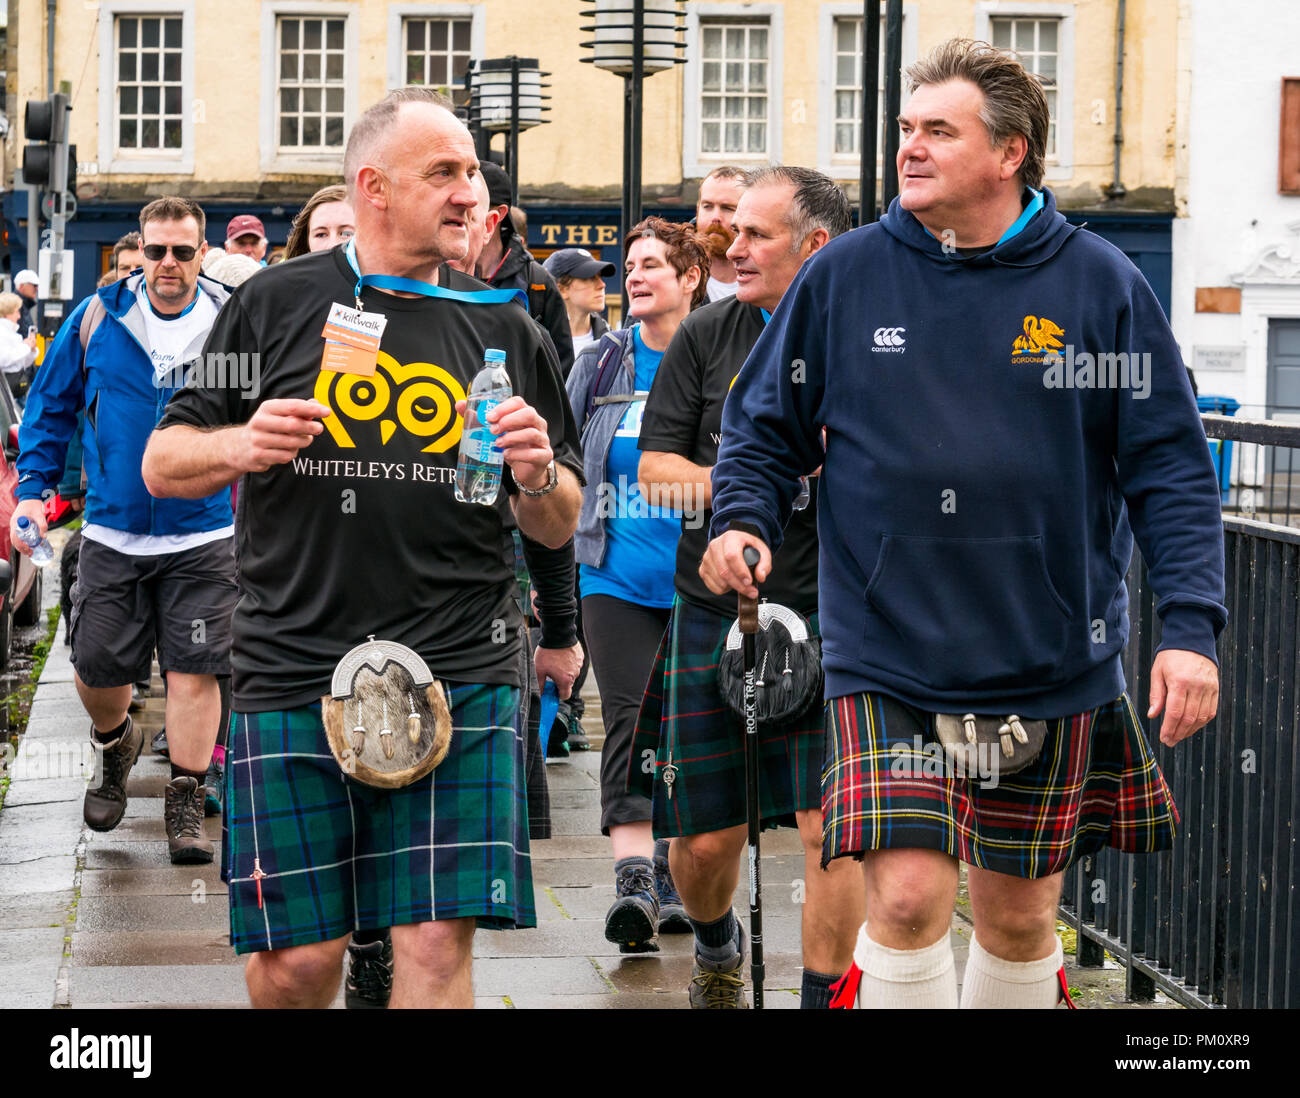 Leith, Edinburgh, Scotland, UK, 16th September 2018. Edinburgh Kilt Walk, the last of four kilt walks this year after those in Glasgow, Aberdeen and Dundee, sponsored by the Royal Bank of Scotland, takes place today. Walkers raise funds for a charity of their choice. There are three walk lengths: the full 24 miles from Holyrood Park to BT Murrayfield Stadium and two shorter walks of 15.5 and 5 miles. The kilt walkers reach The Shore in Leith at about Mile 14. A group of older men wearing kilts walk across the bridge raising money for Whiteley's Retreat - Stock Image